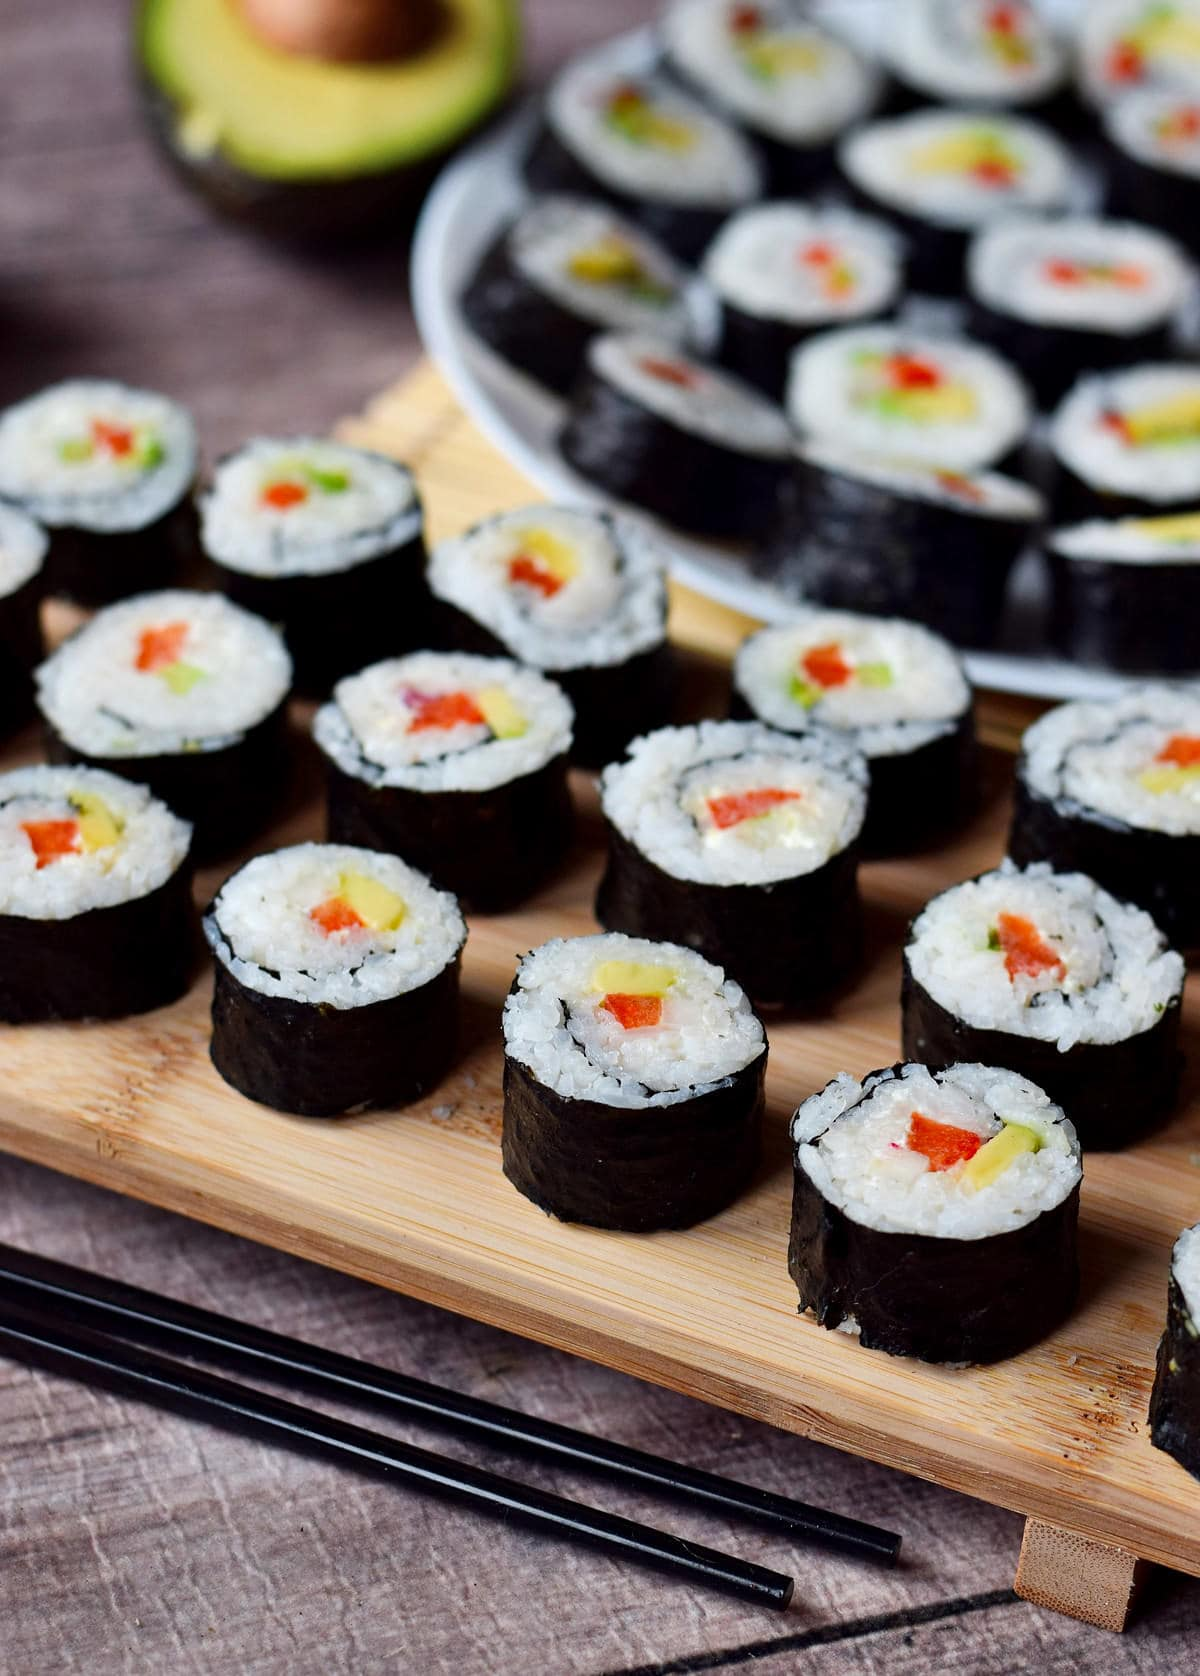 close-up of sushi rolls on wooden board